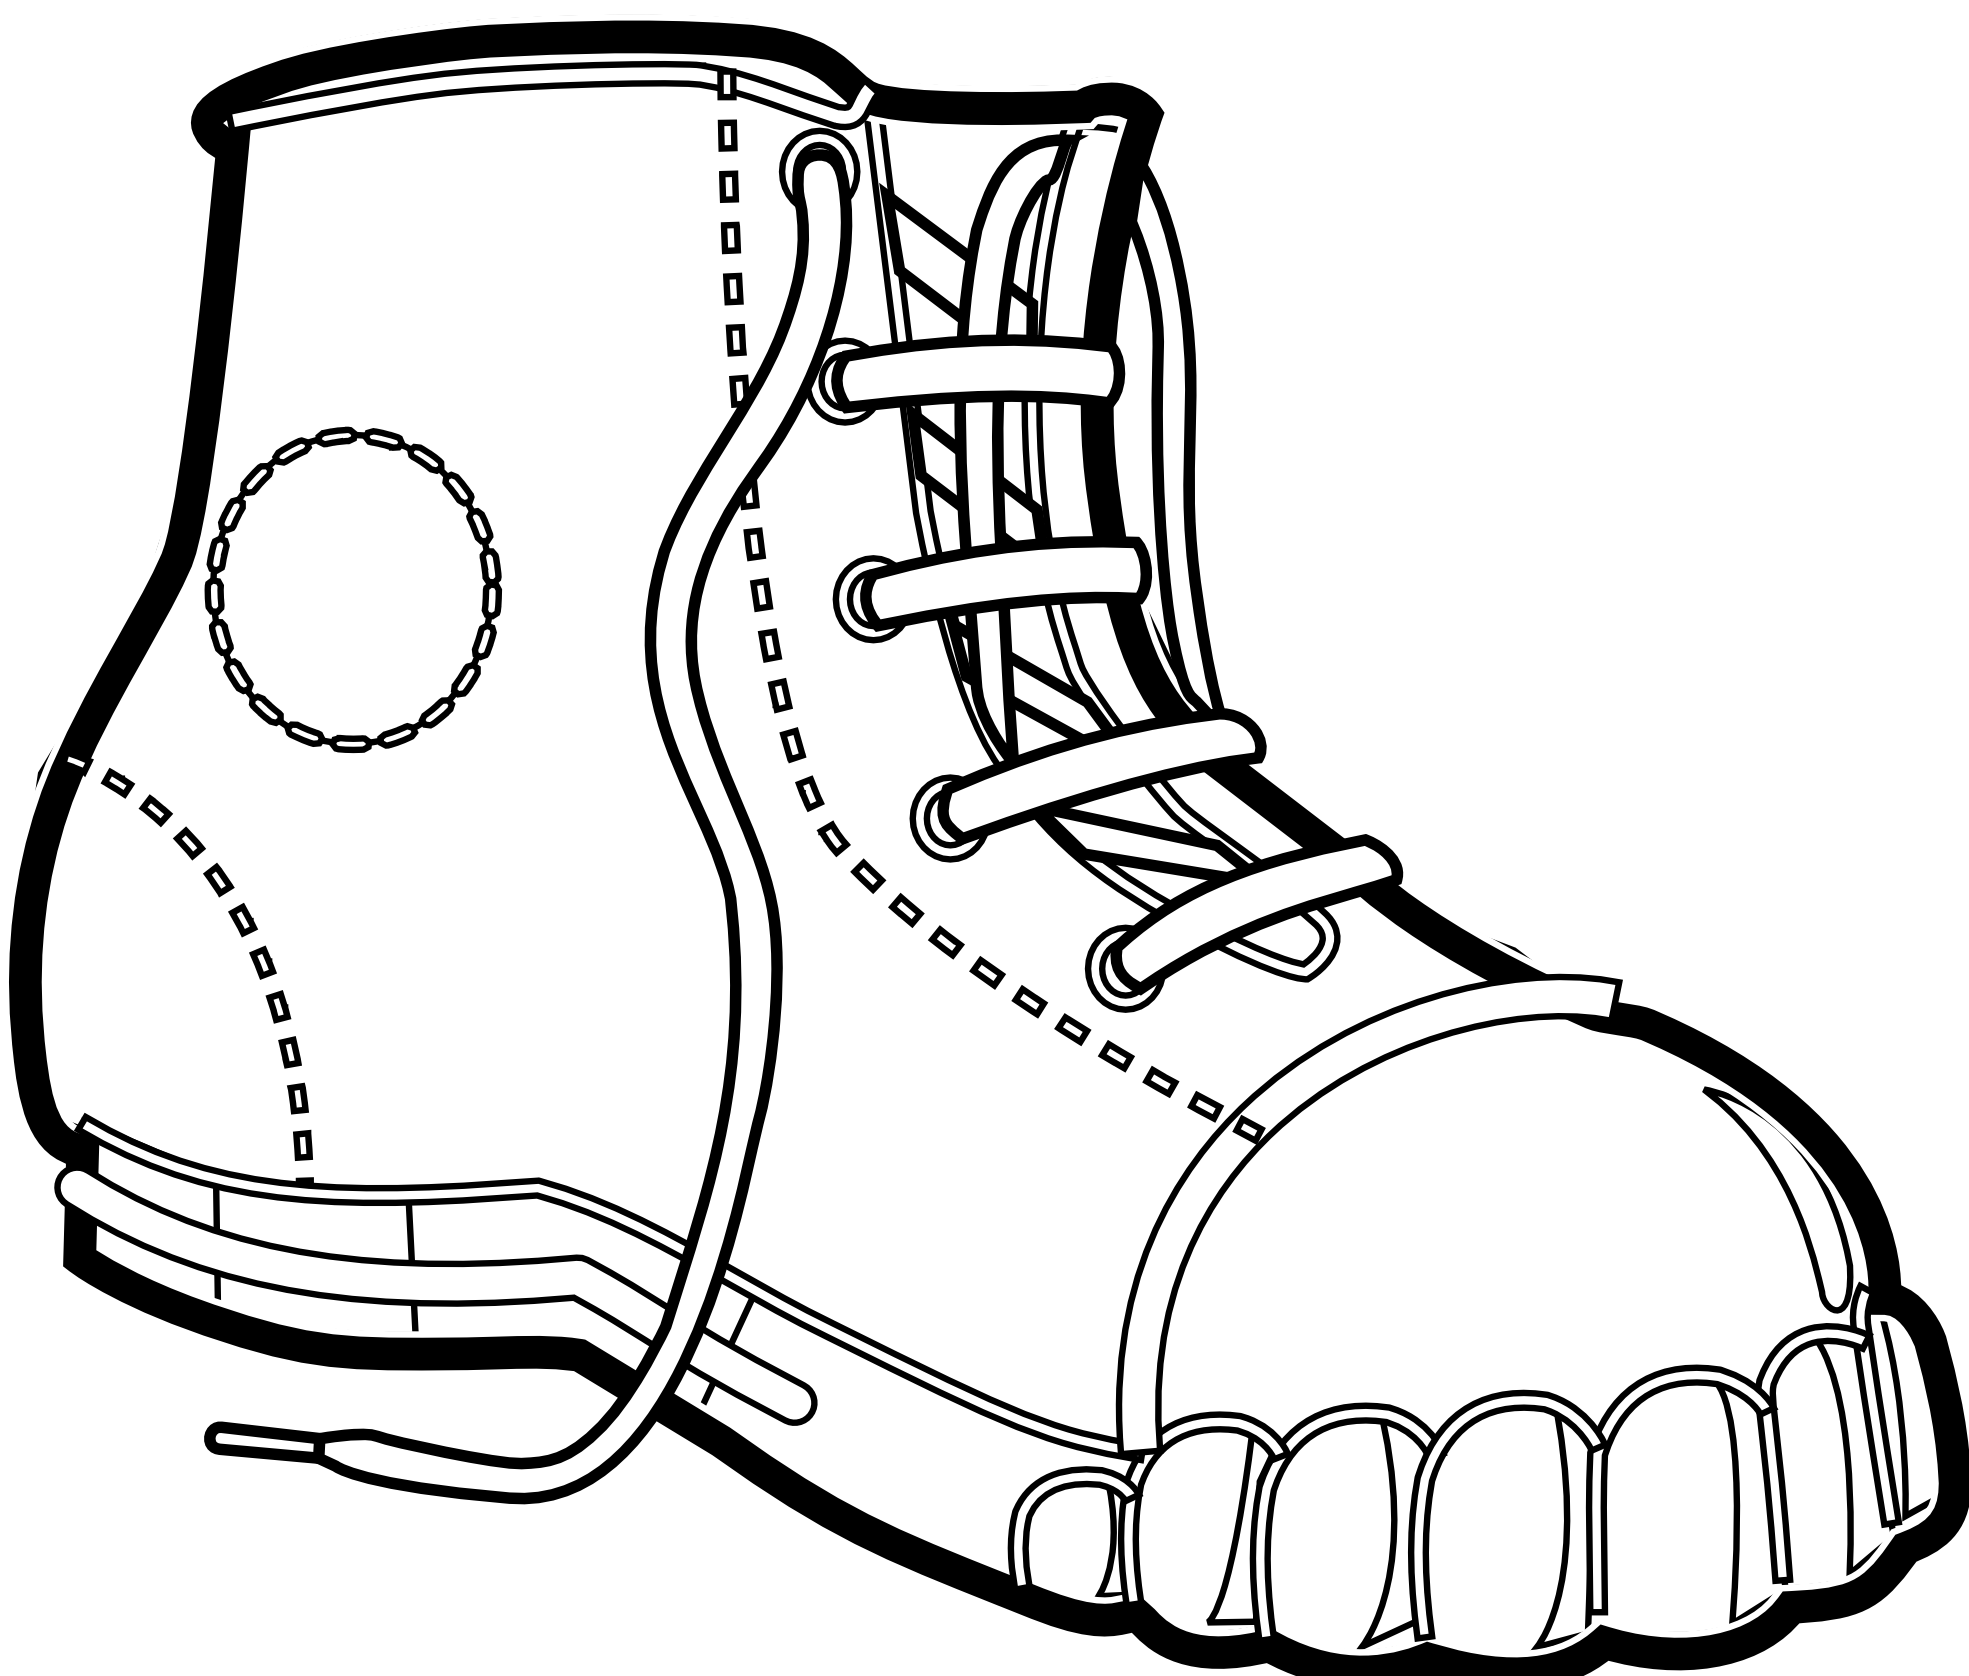 Clip Art Boot Clip Art clip art snow boots santa barbara institute for consciousness boots